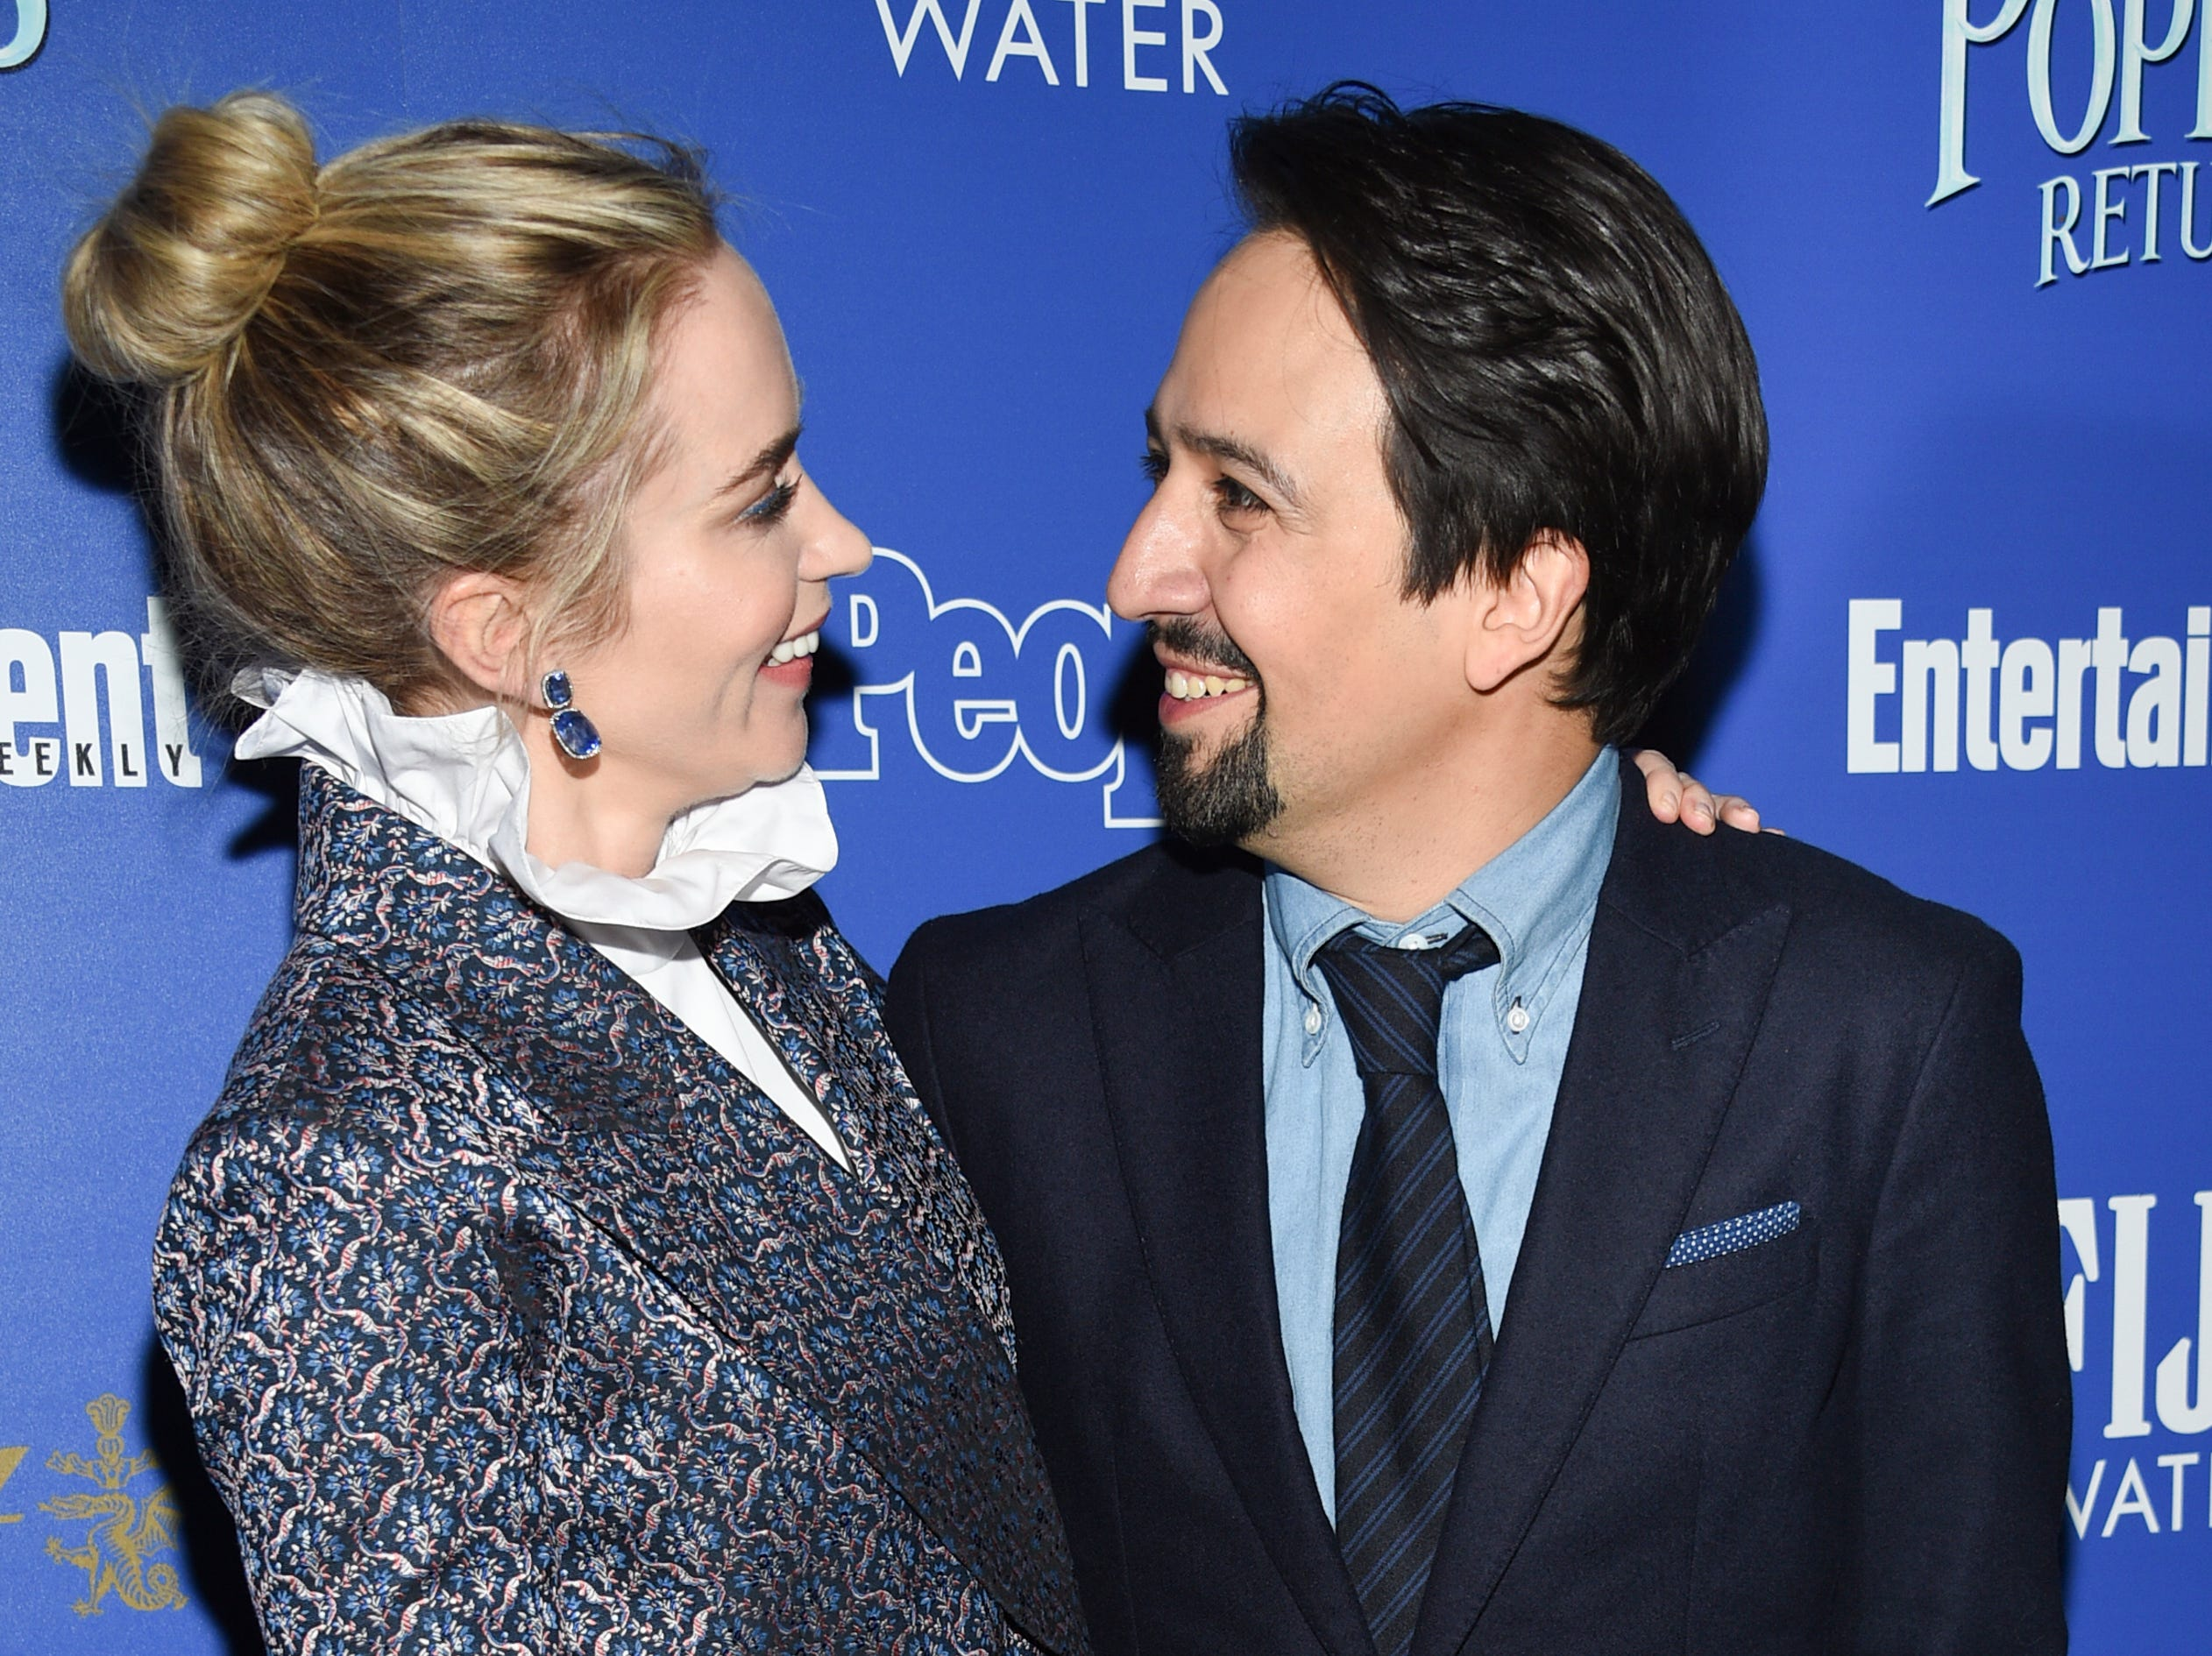 """xxx attends a special screening of Disney's """"Mary Poppins Returns"""", hosted by The Cinema Society, at the SVA Theatre on Monday, Dec. 17, 2018, in New York. (Photo by Evan Agostini/Invision/AP) ORG XMIT: NYEA221"""